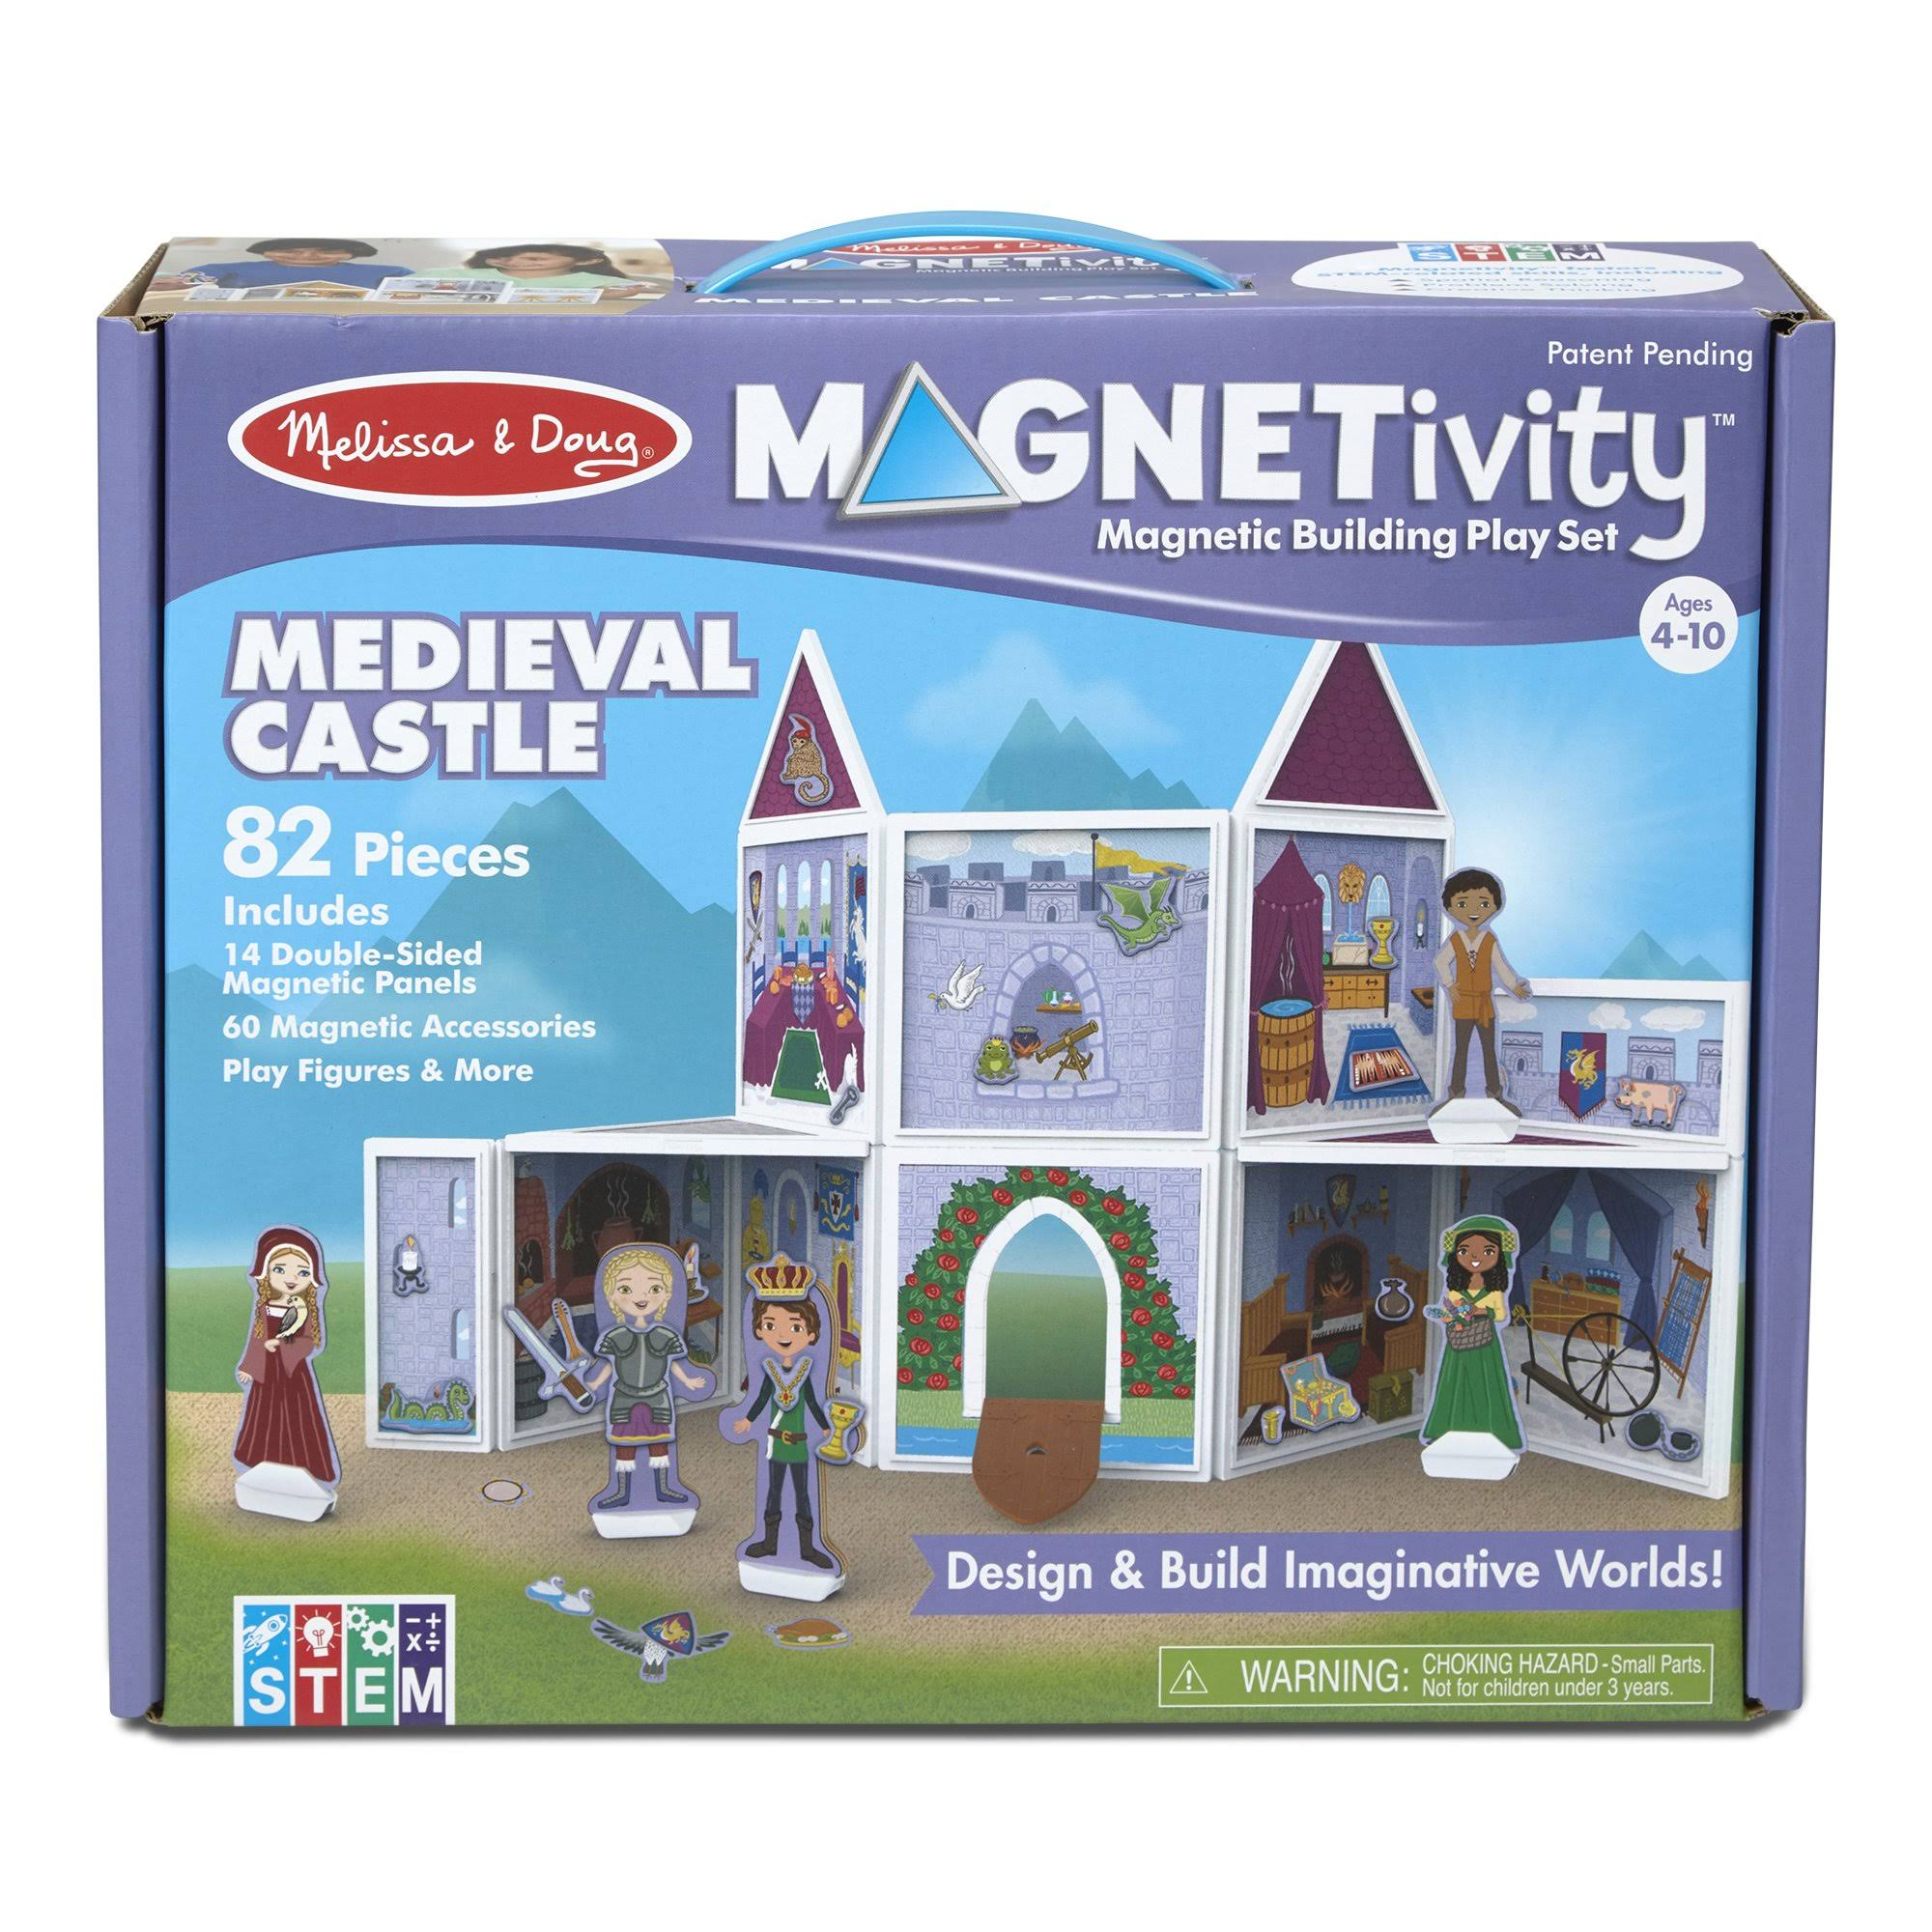 Melissa & Doug Building Play Set Medieval Castle Magnetivity Magnetic